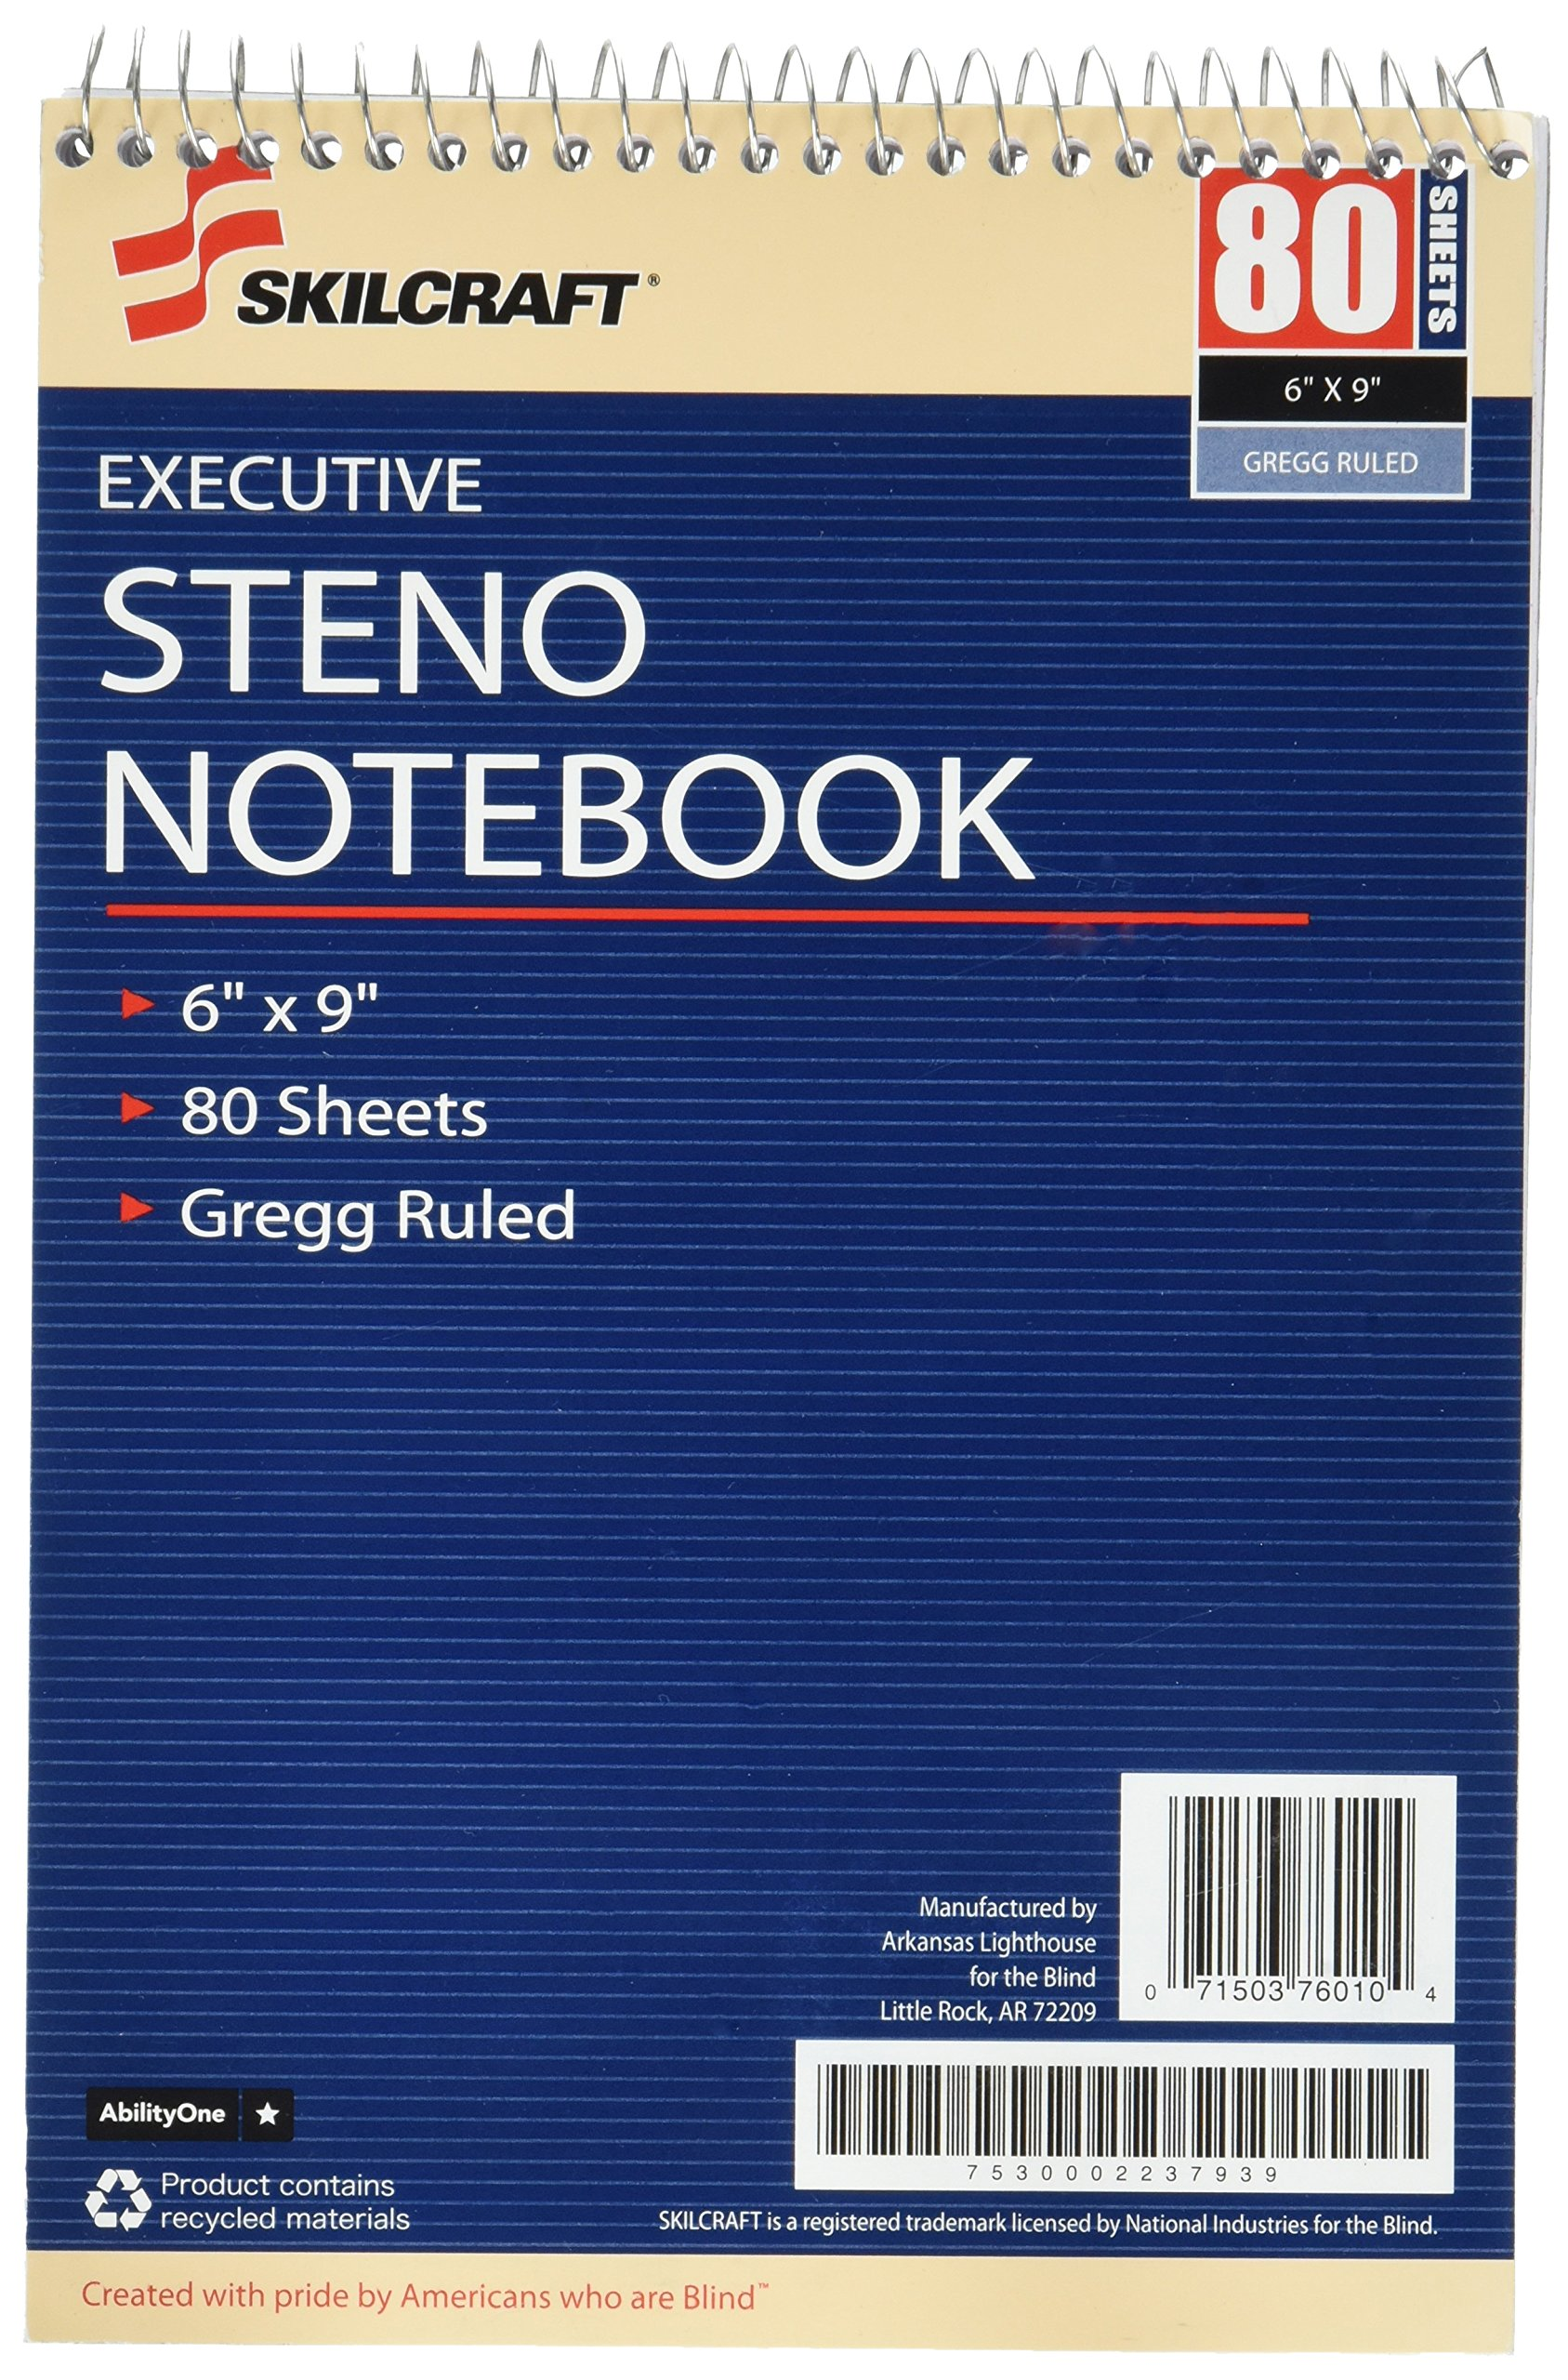 SKILCRAFT Executive Steno Notebook